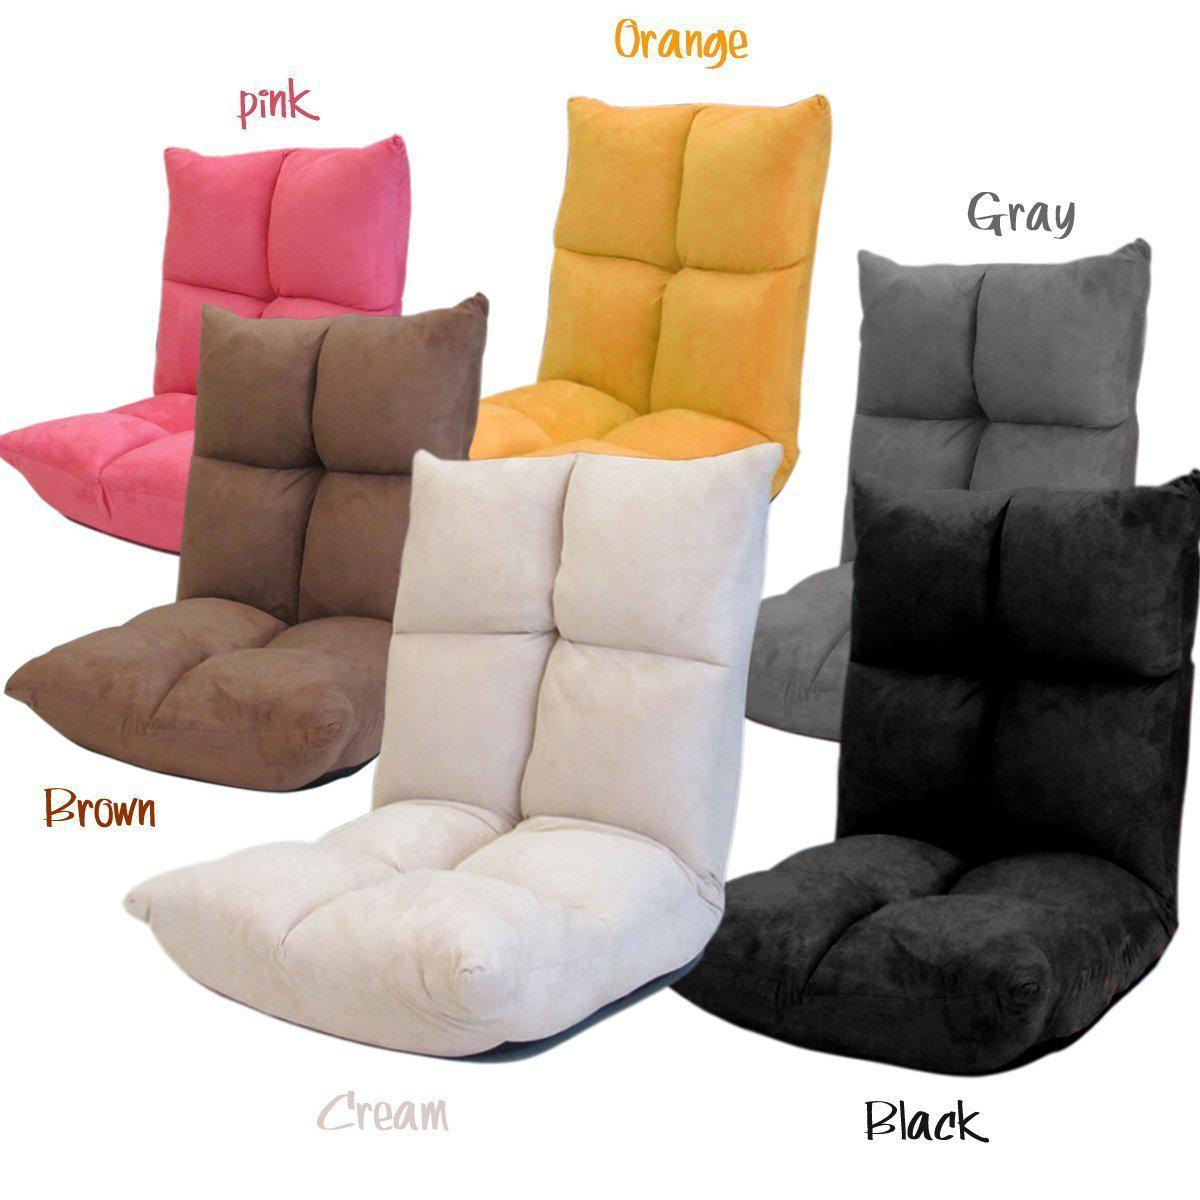 2018 Folding Chairs ,Sofa Set, Leather Sofa, Lounge Sofa Chairs, Lazy Sofa,Sofa  Chair,Armchairs ,Leisure Furniture, Soft Chair,Leather Chair From ...